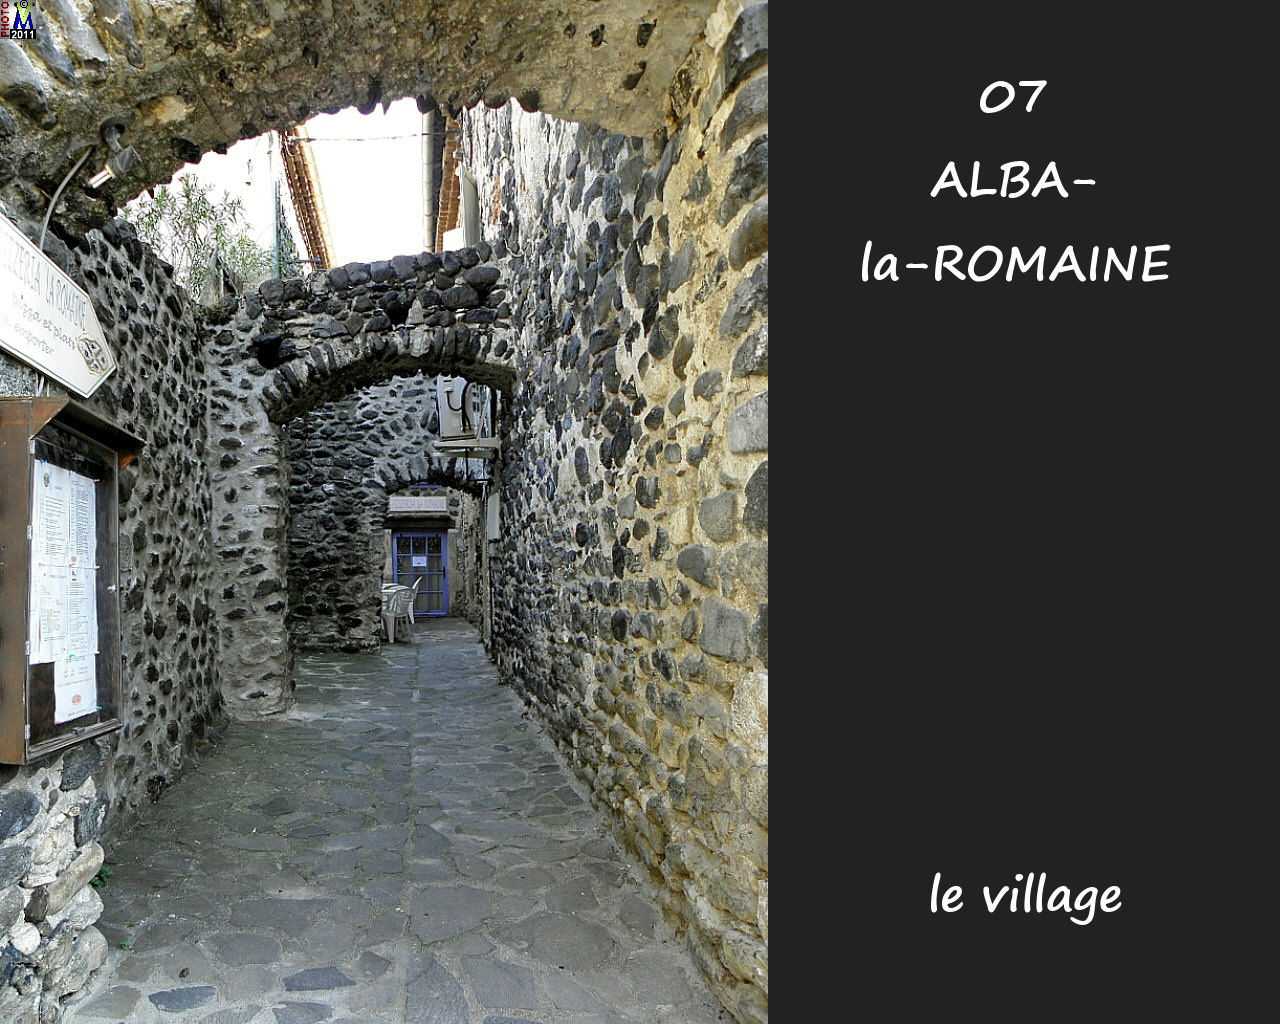 07ALBA-ROMAINE_village_106.jpg